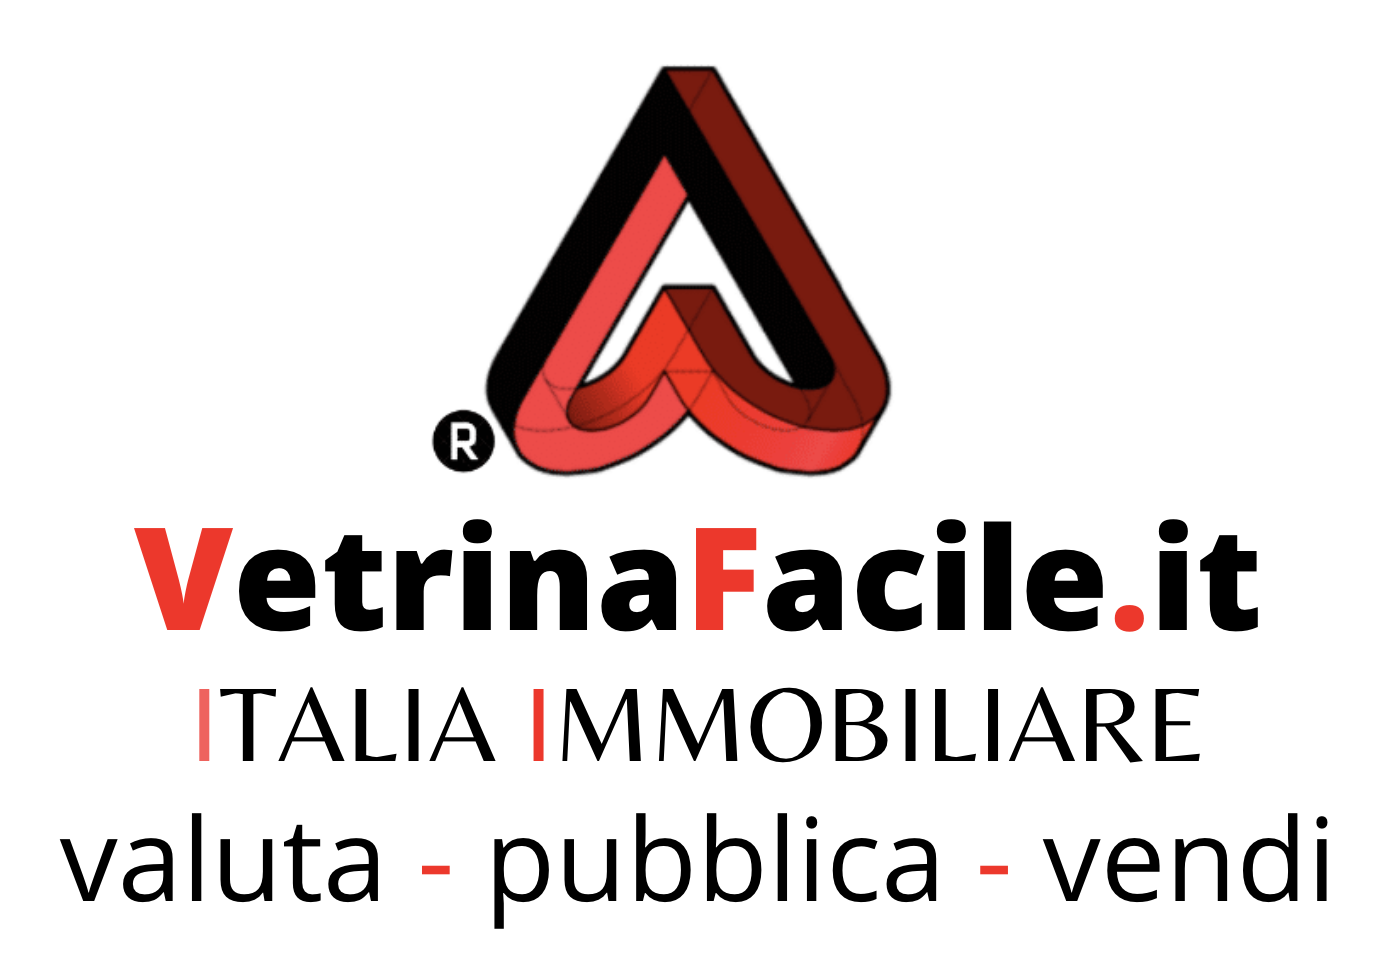 VetrinaFacile.it & Italia Immobiliare